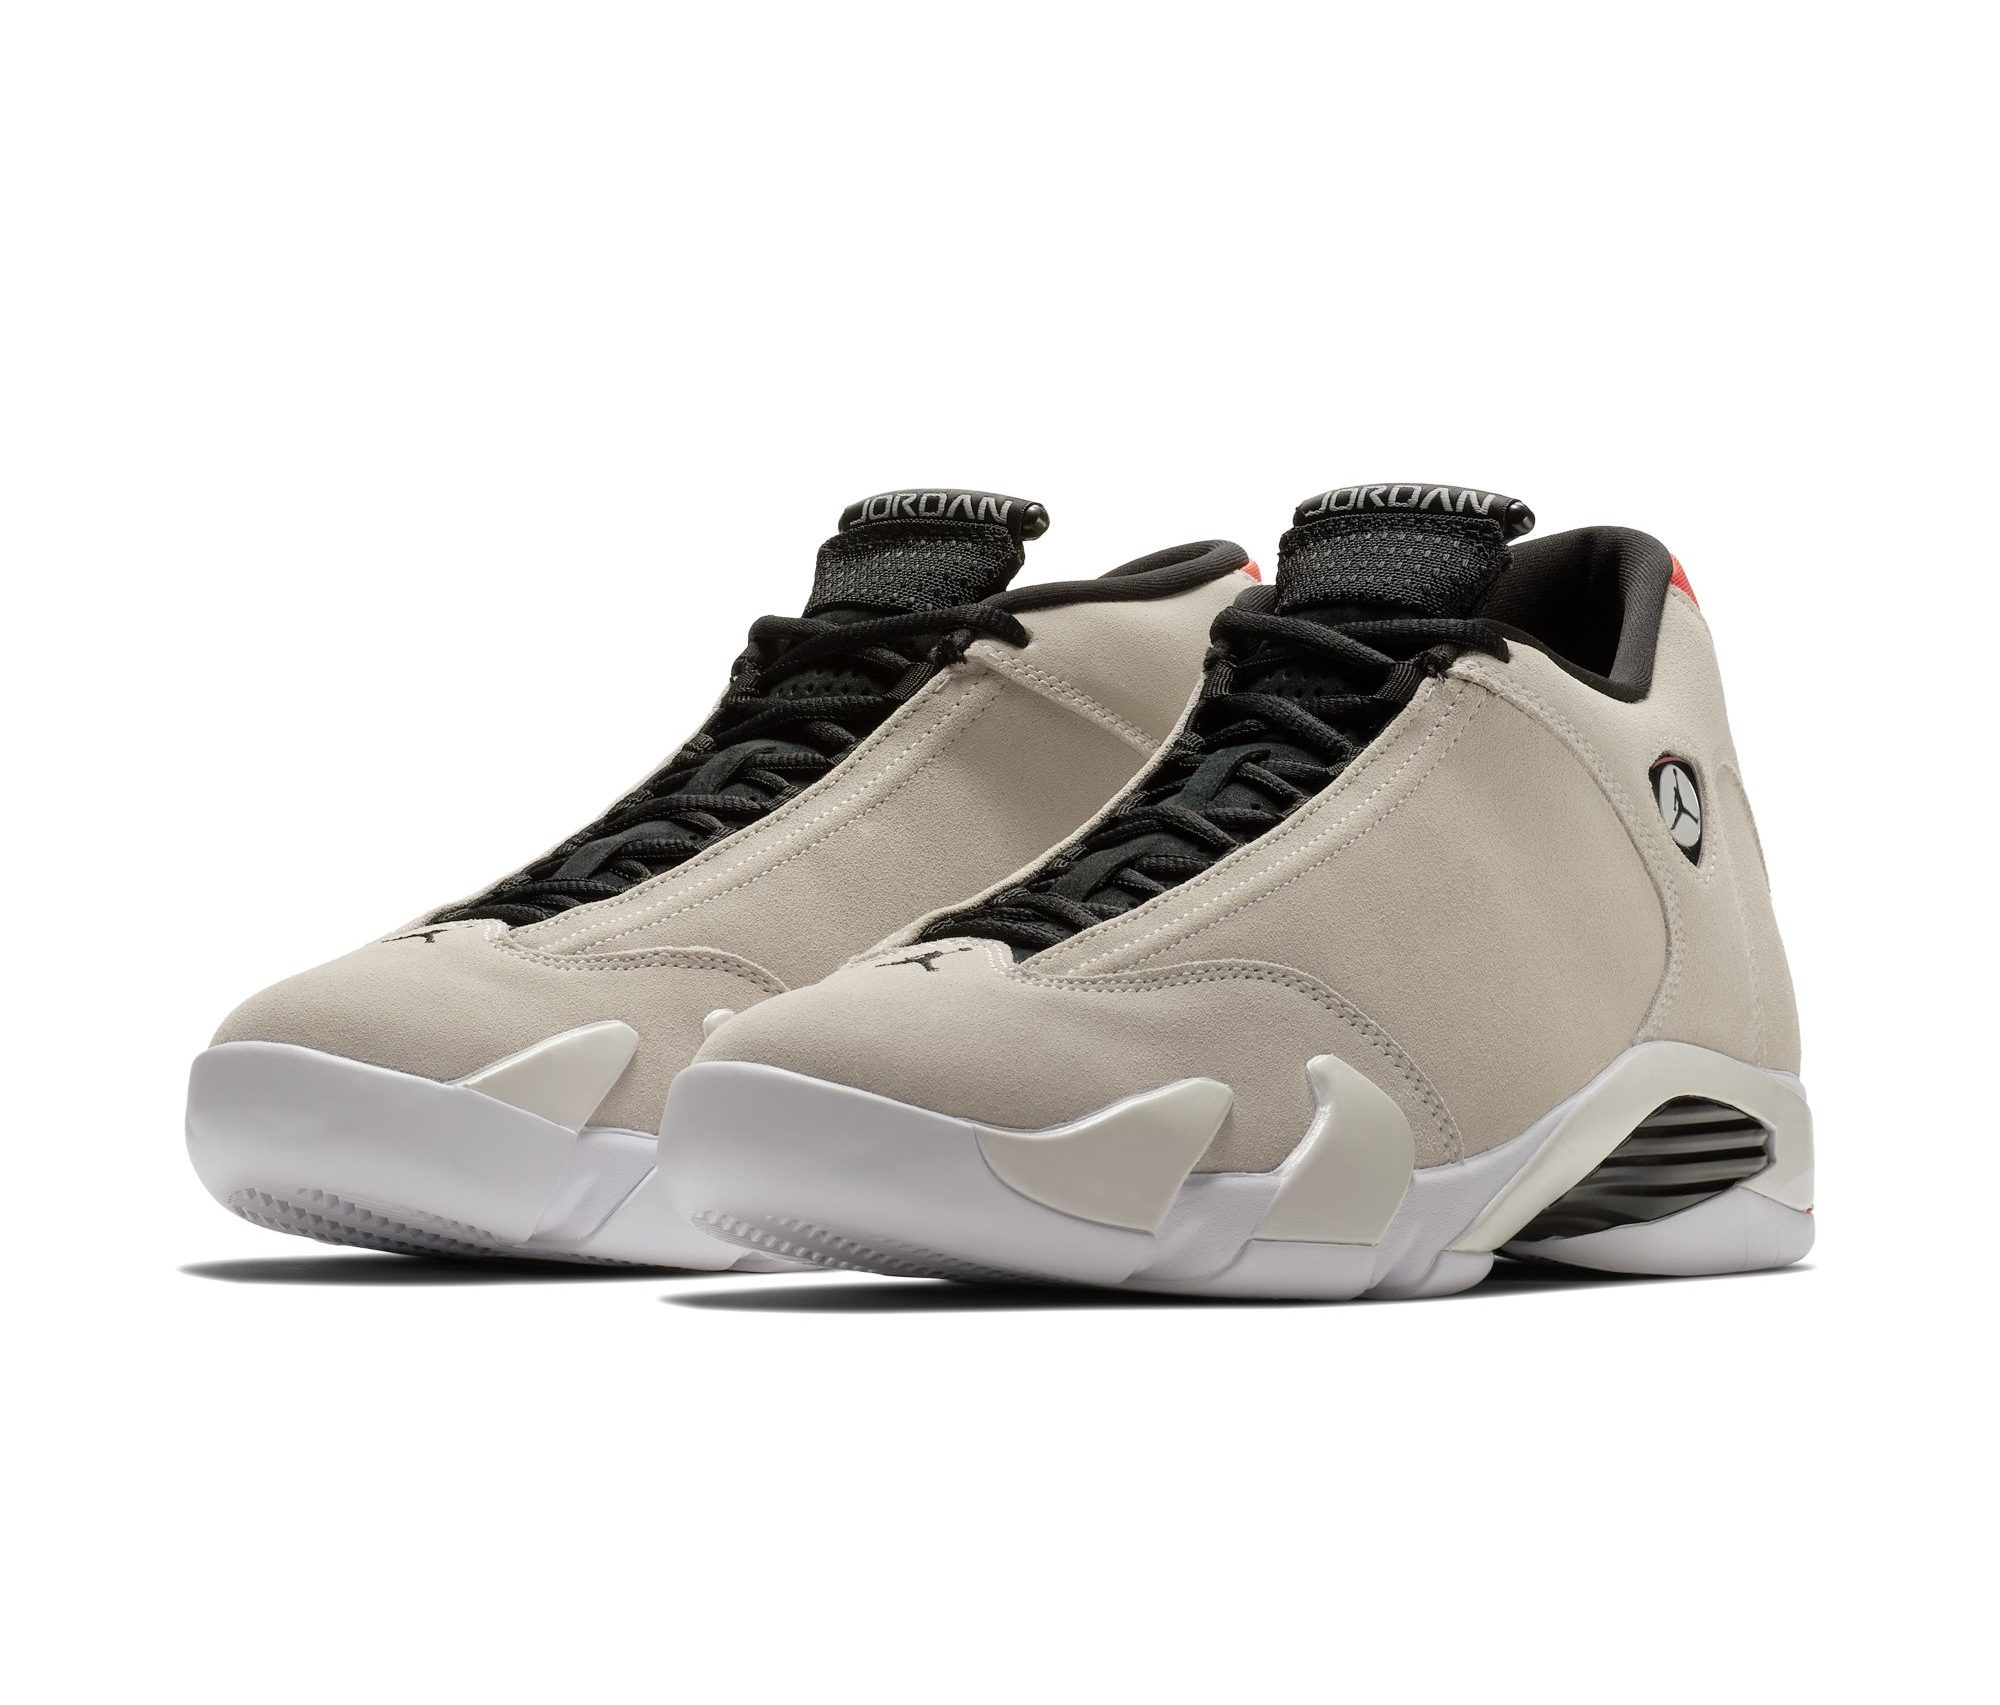 promo code 68d7b 5d0d0 An Official Look at the Air Jordan 14 'Desert Sand ...